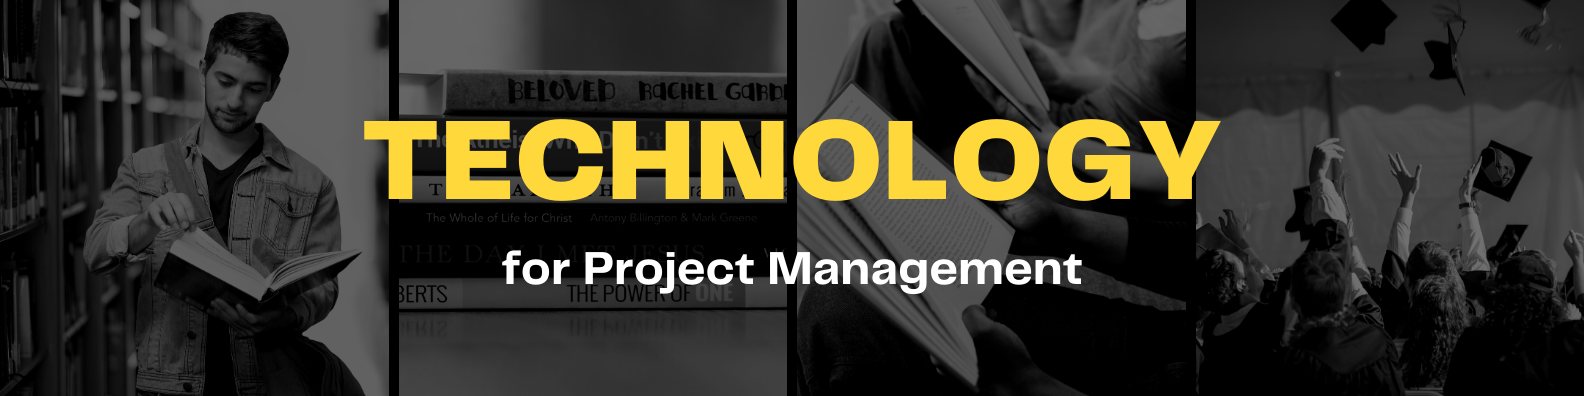 Technology for Project Management